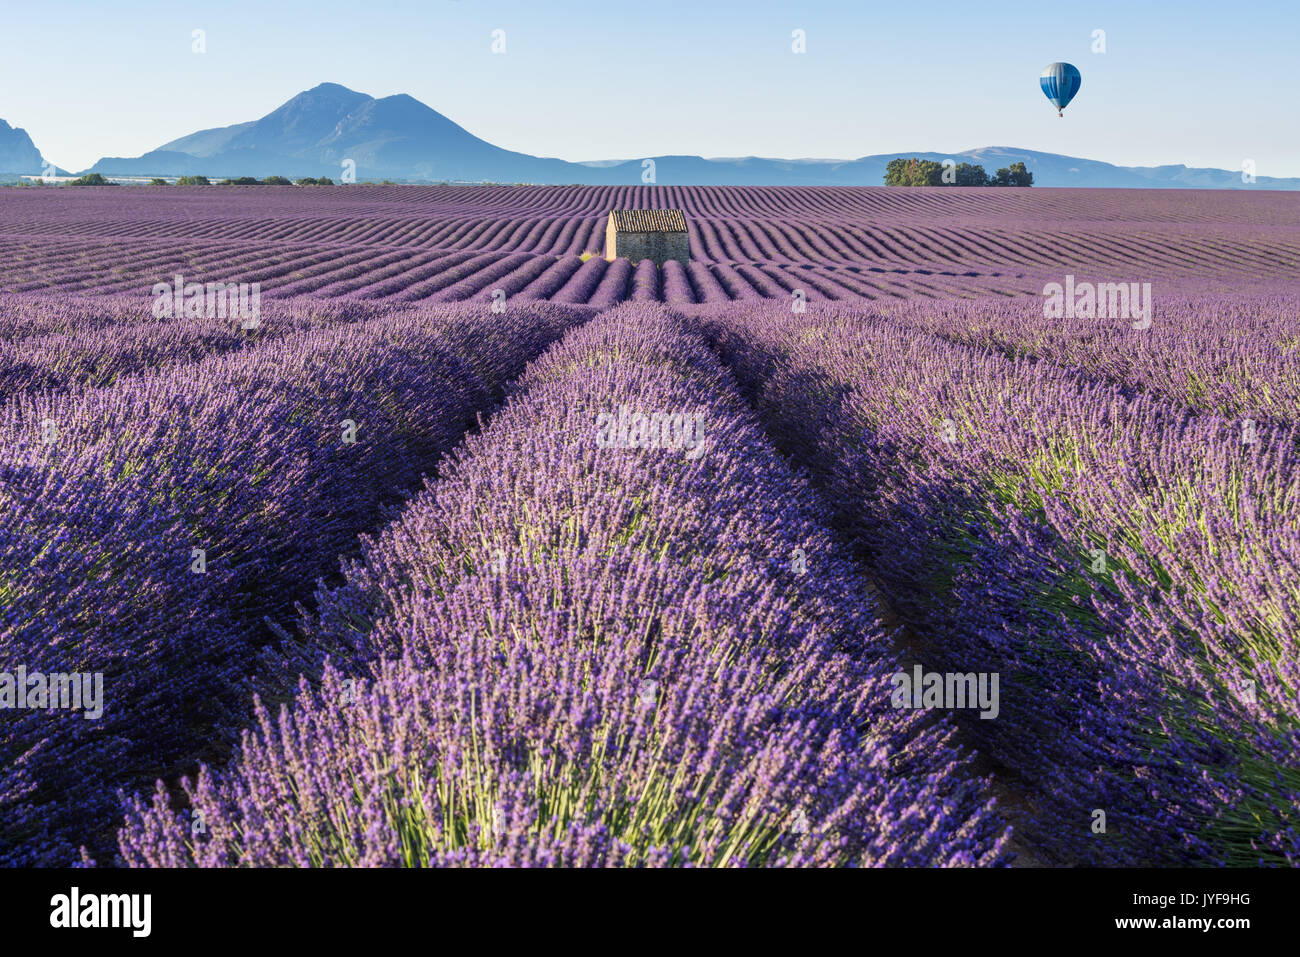 Hot air balloon over Lavender fields of Valensole. Provence, France - Stock Image